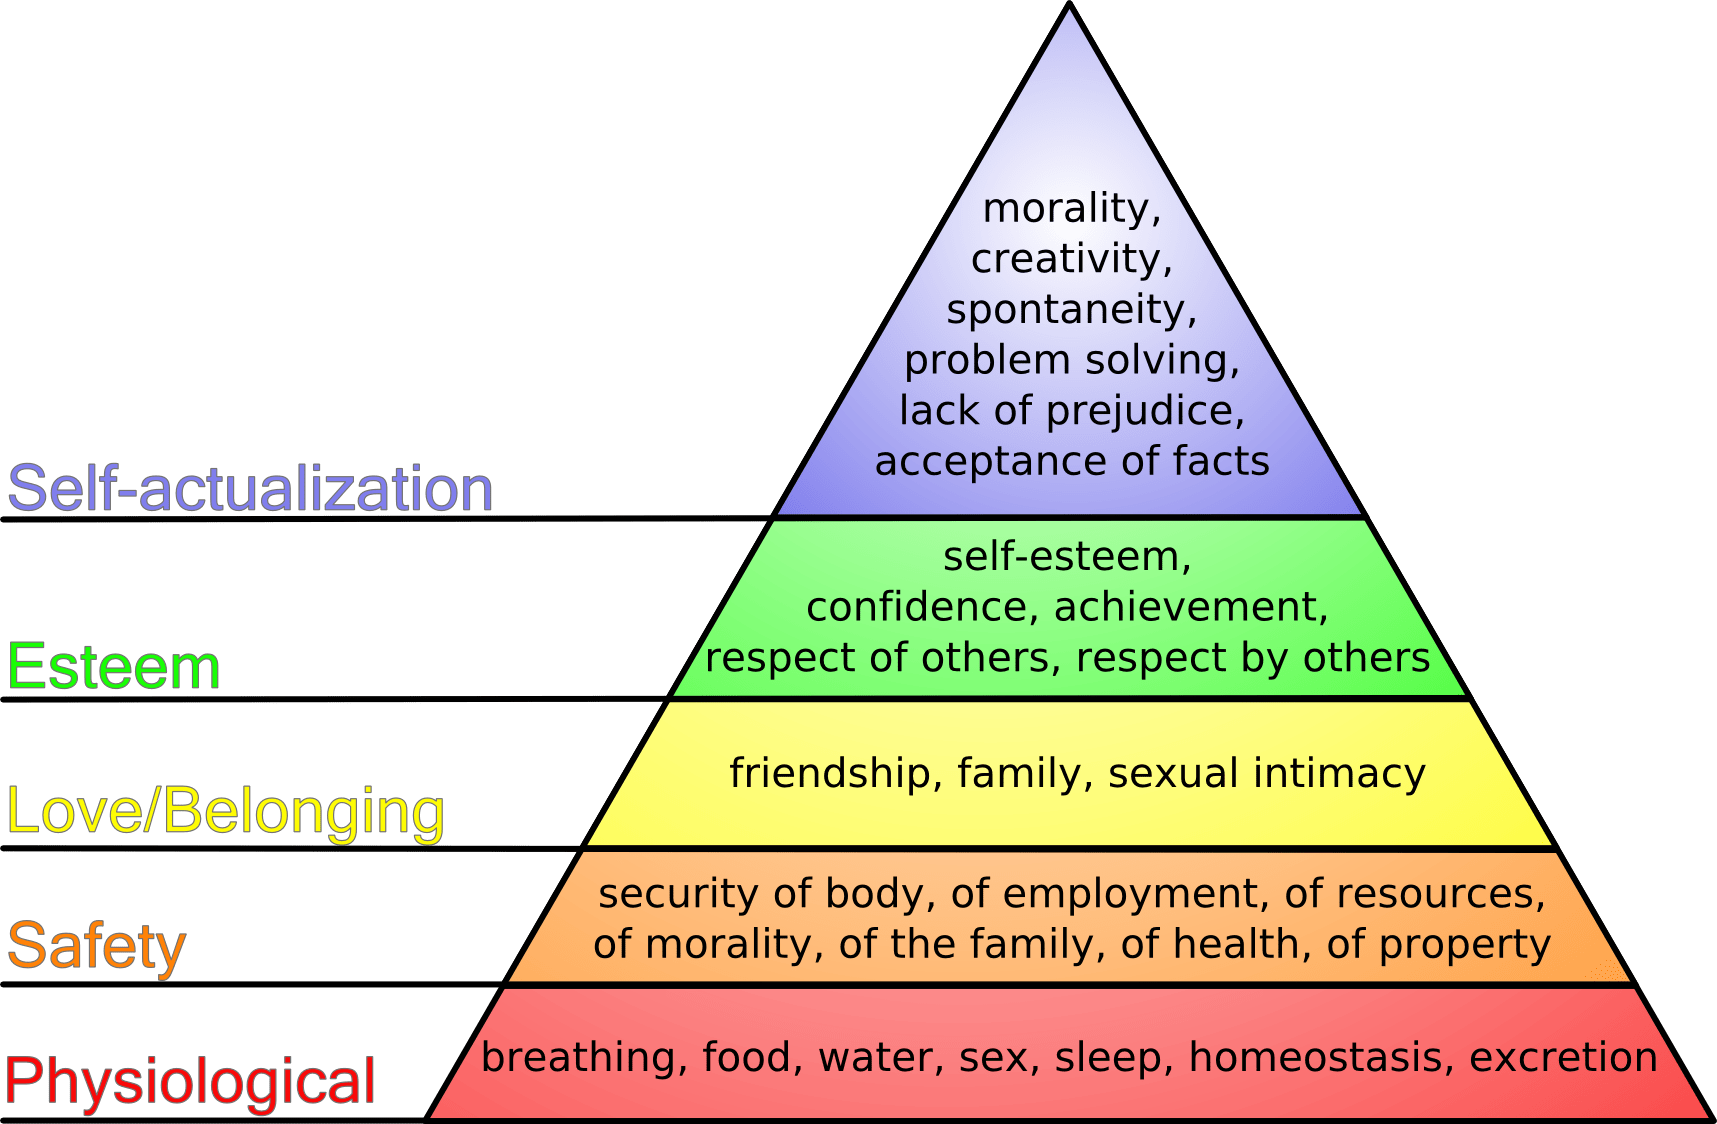 Maslow's Hierarchy of Needs 需求層次理論 | 太初